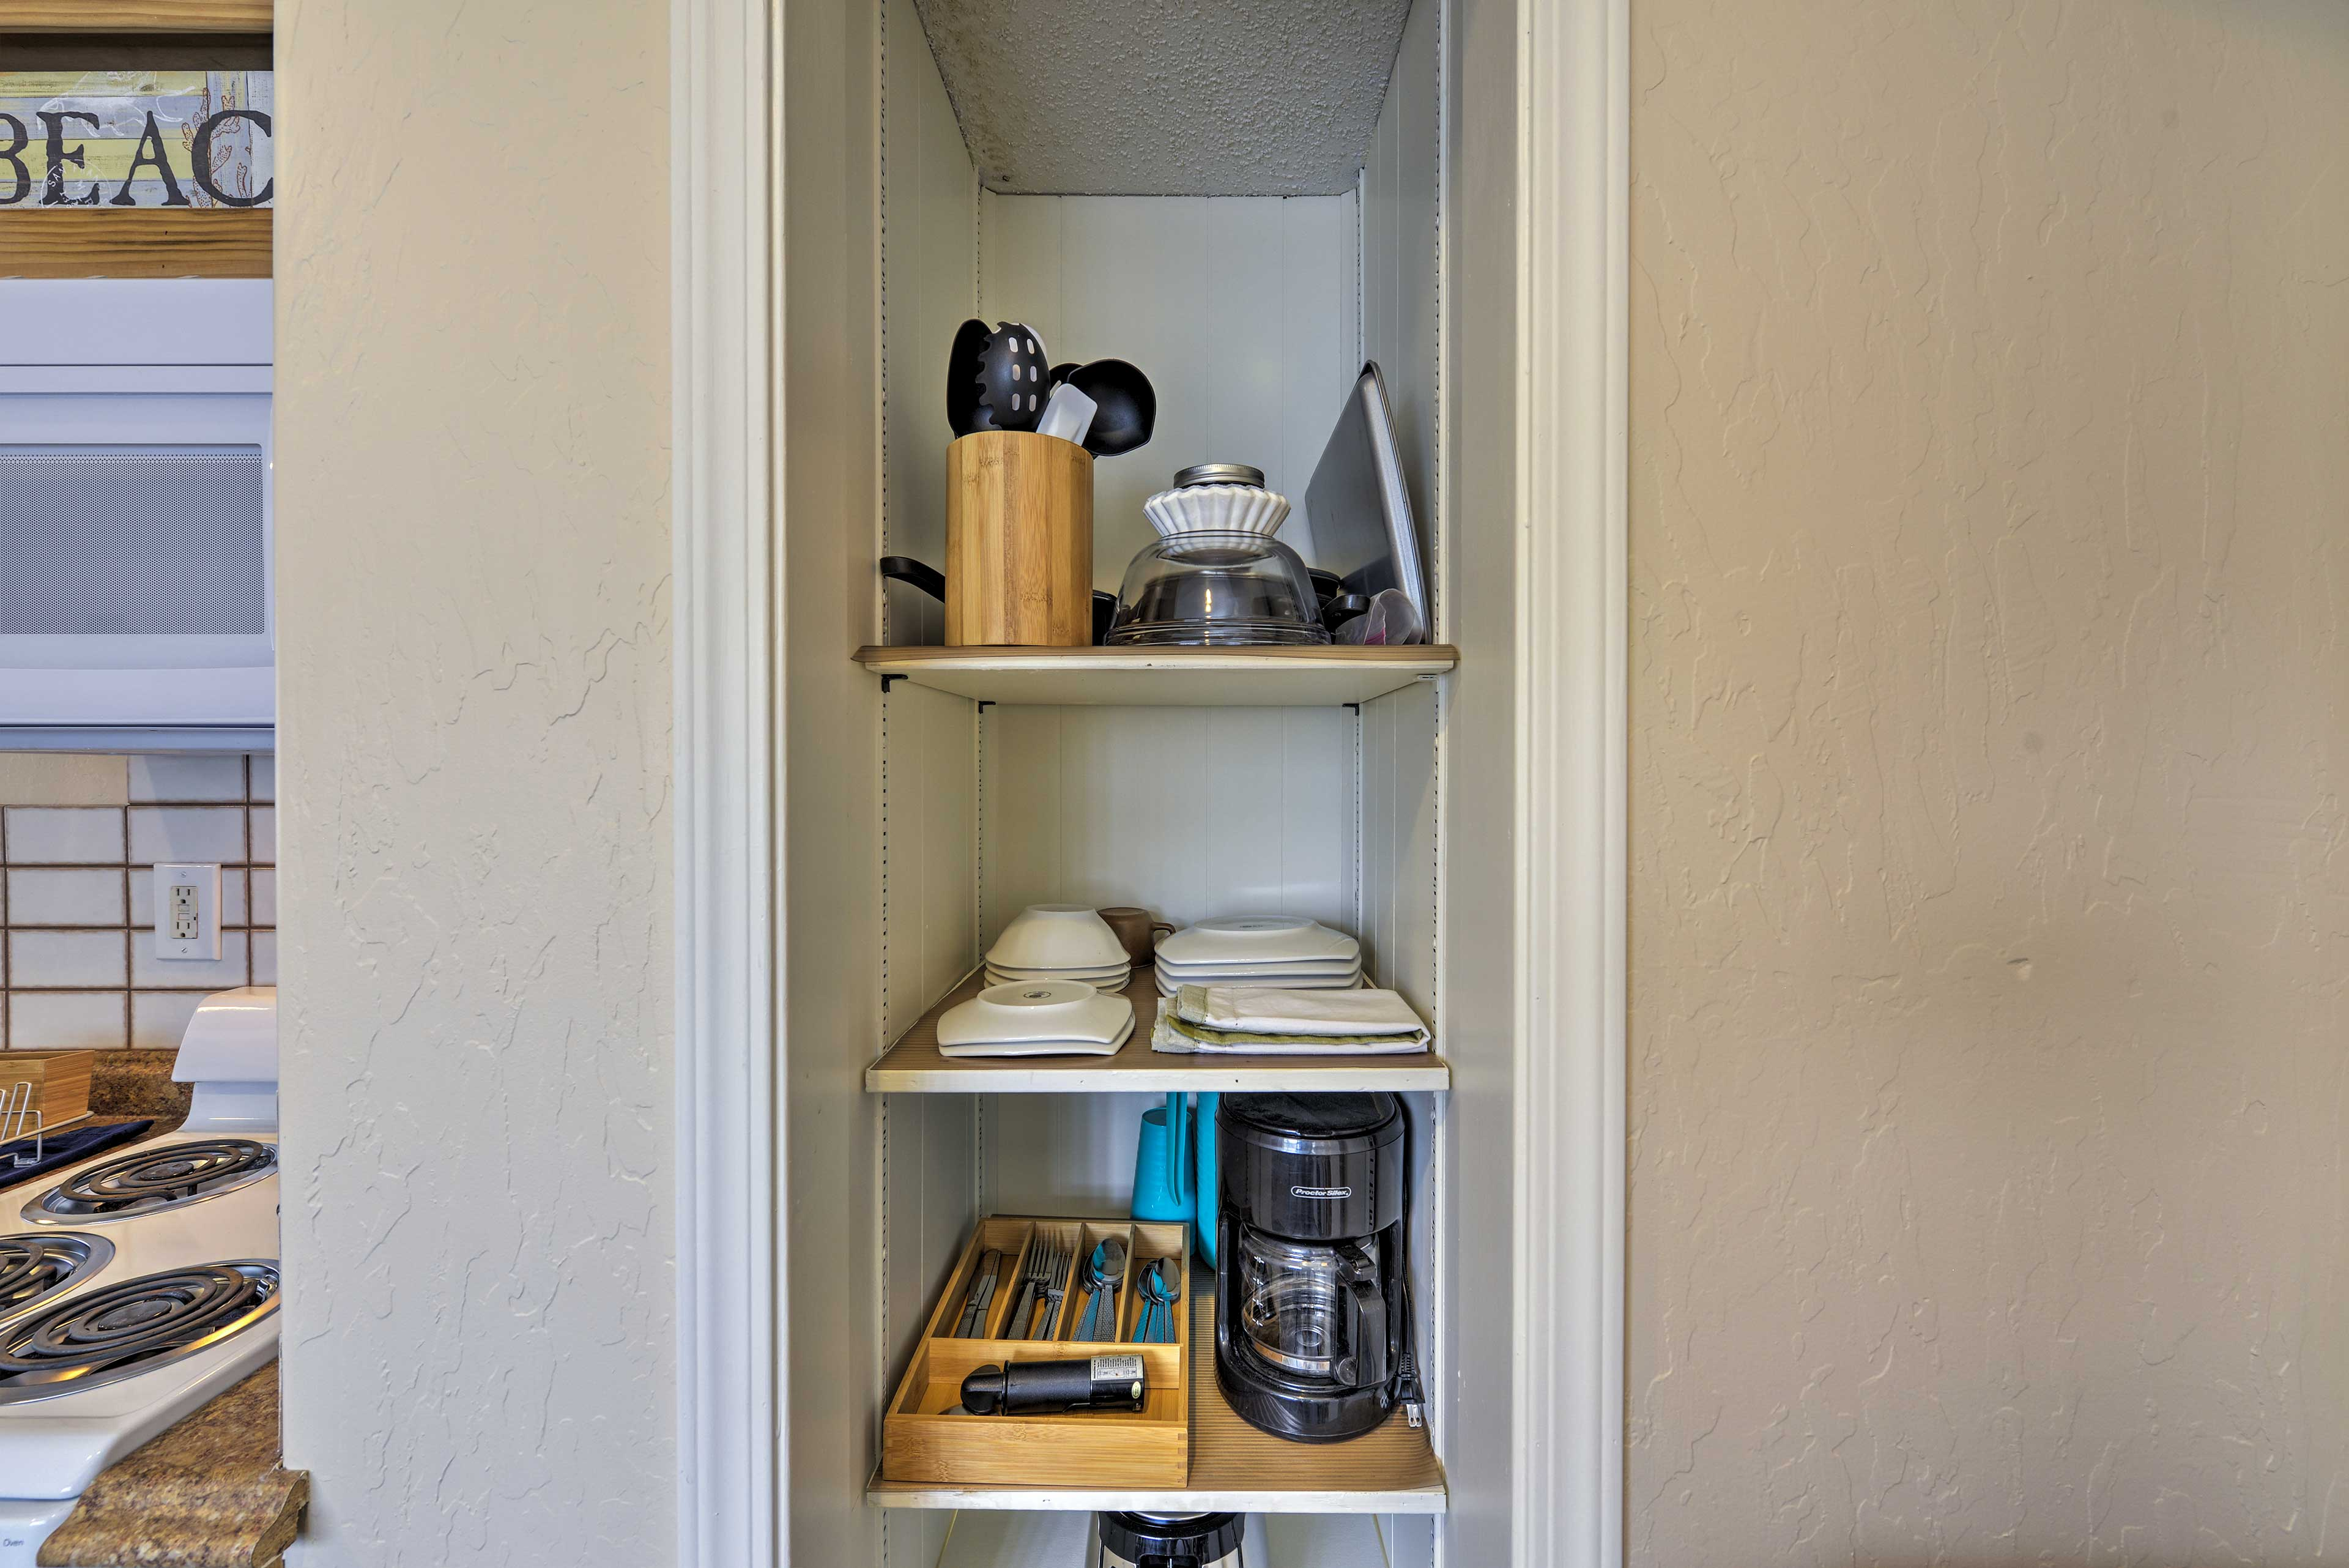 There's ample cookware and dishware in the kitchen!